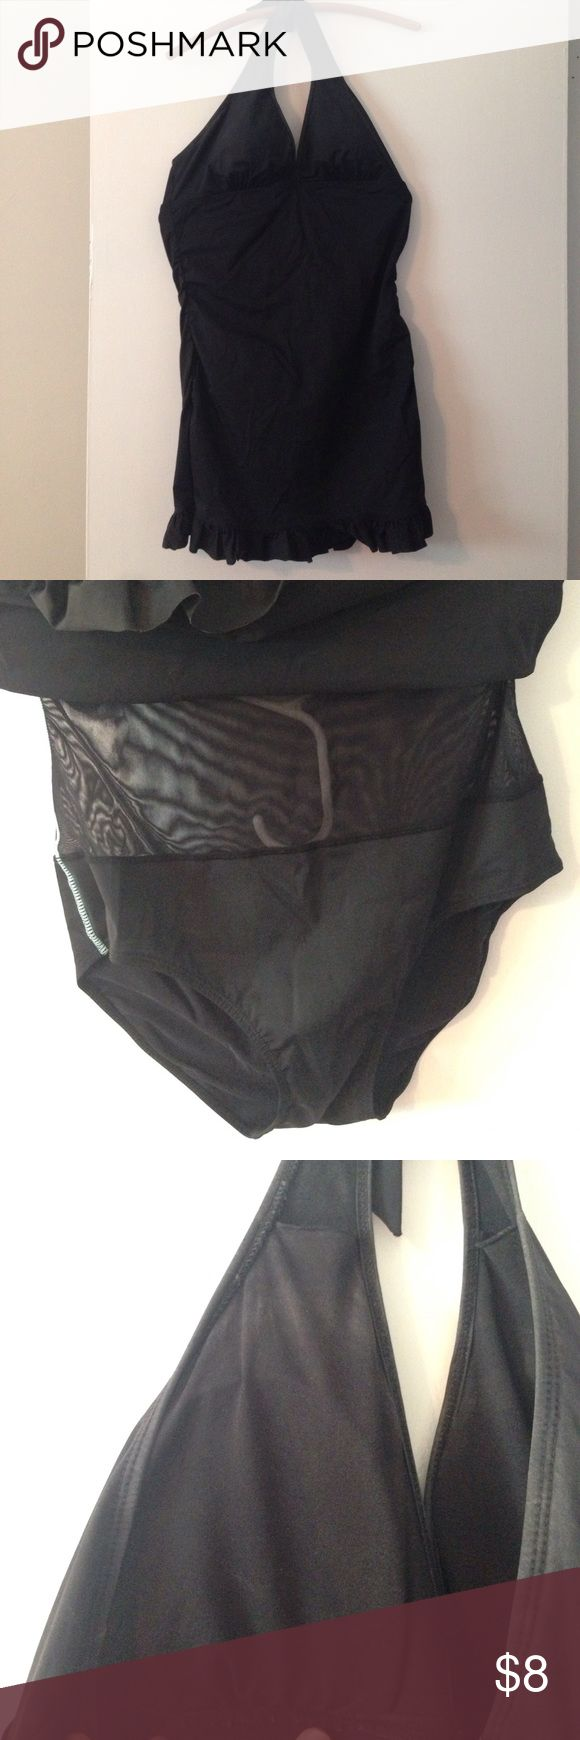 Black skirted spanx swimsuit Spanx/Assets tummy control swimsuit. Underneath is a mesh suit and solid pants with a ruffled and gathered skirt over the top. Wear this with white sunglasses and a straw hat with a black band and look fantastic on the beach! ASSETS by Sara Blakely Swim One Pieces